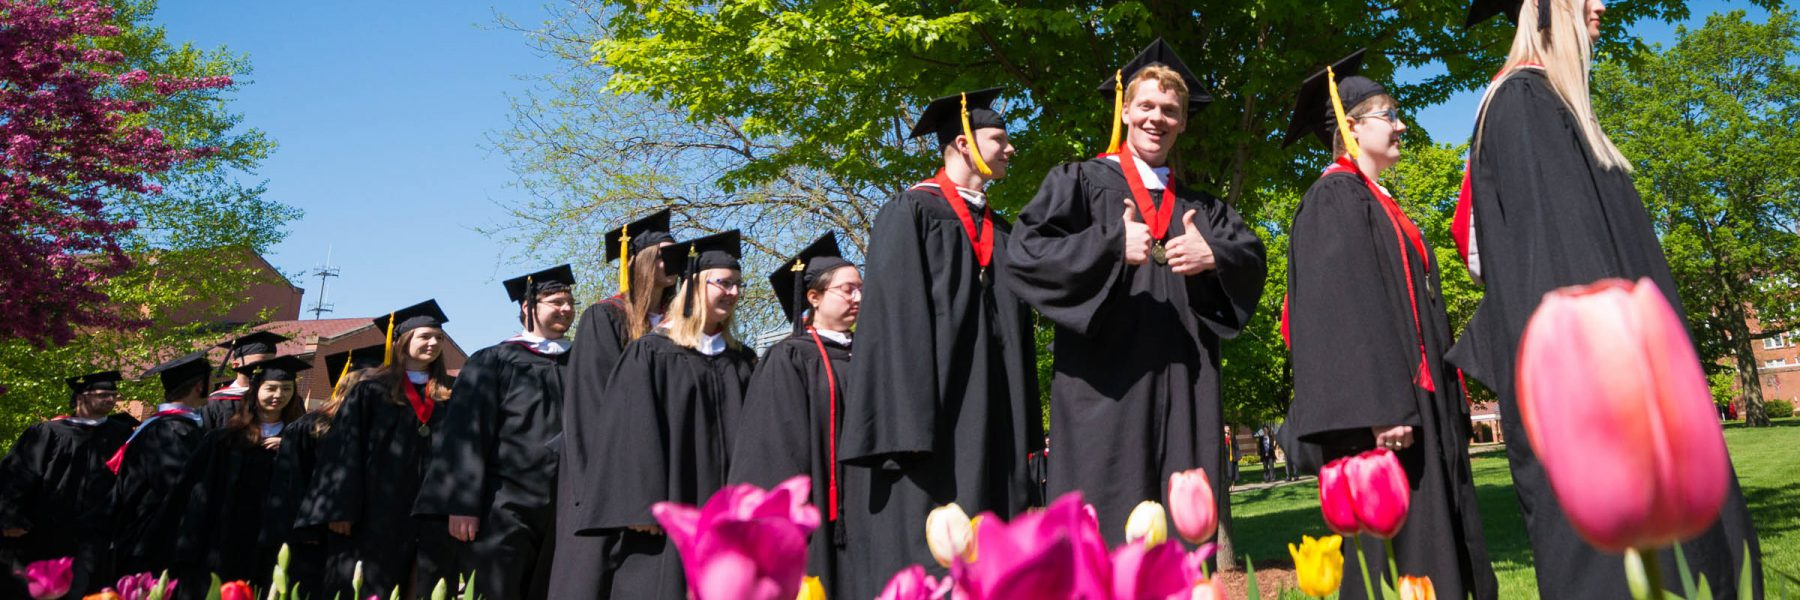 Graduates process across the campus before the commencement ceremony